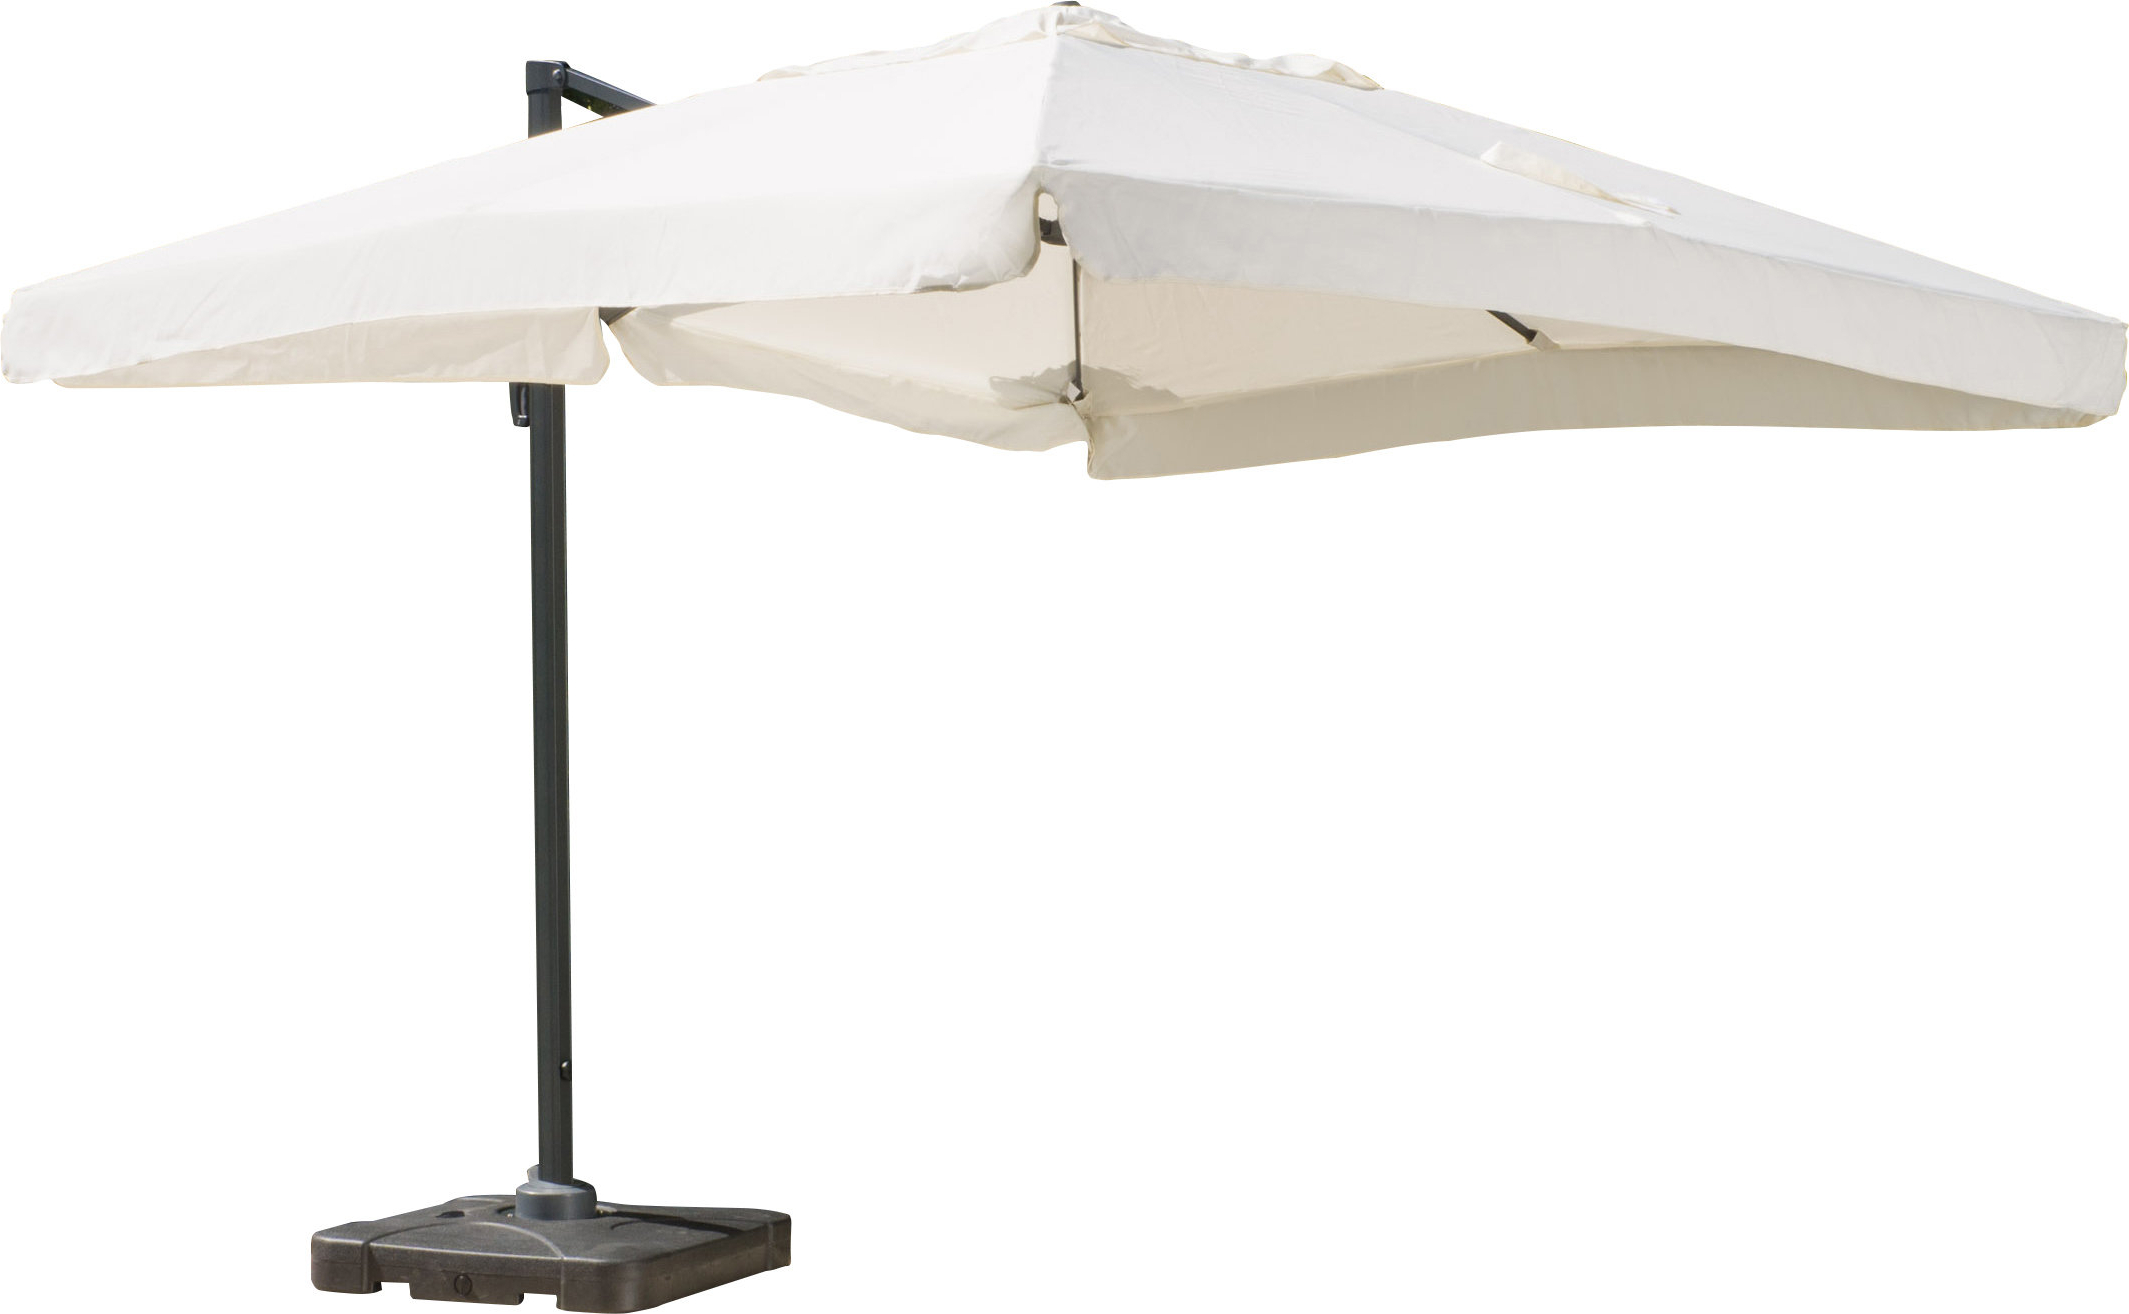 Most Current Sol 72 Outdoor Bondi 9.8' Square Cantilever Umbrella For Annabelle Market Umbrellas (Gallery 18 of 20)